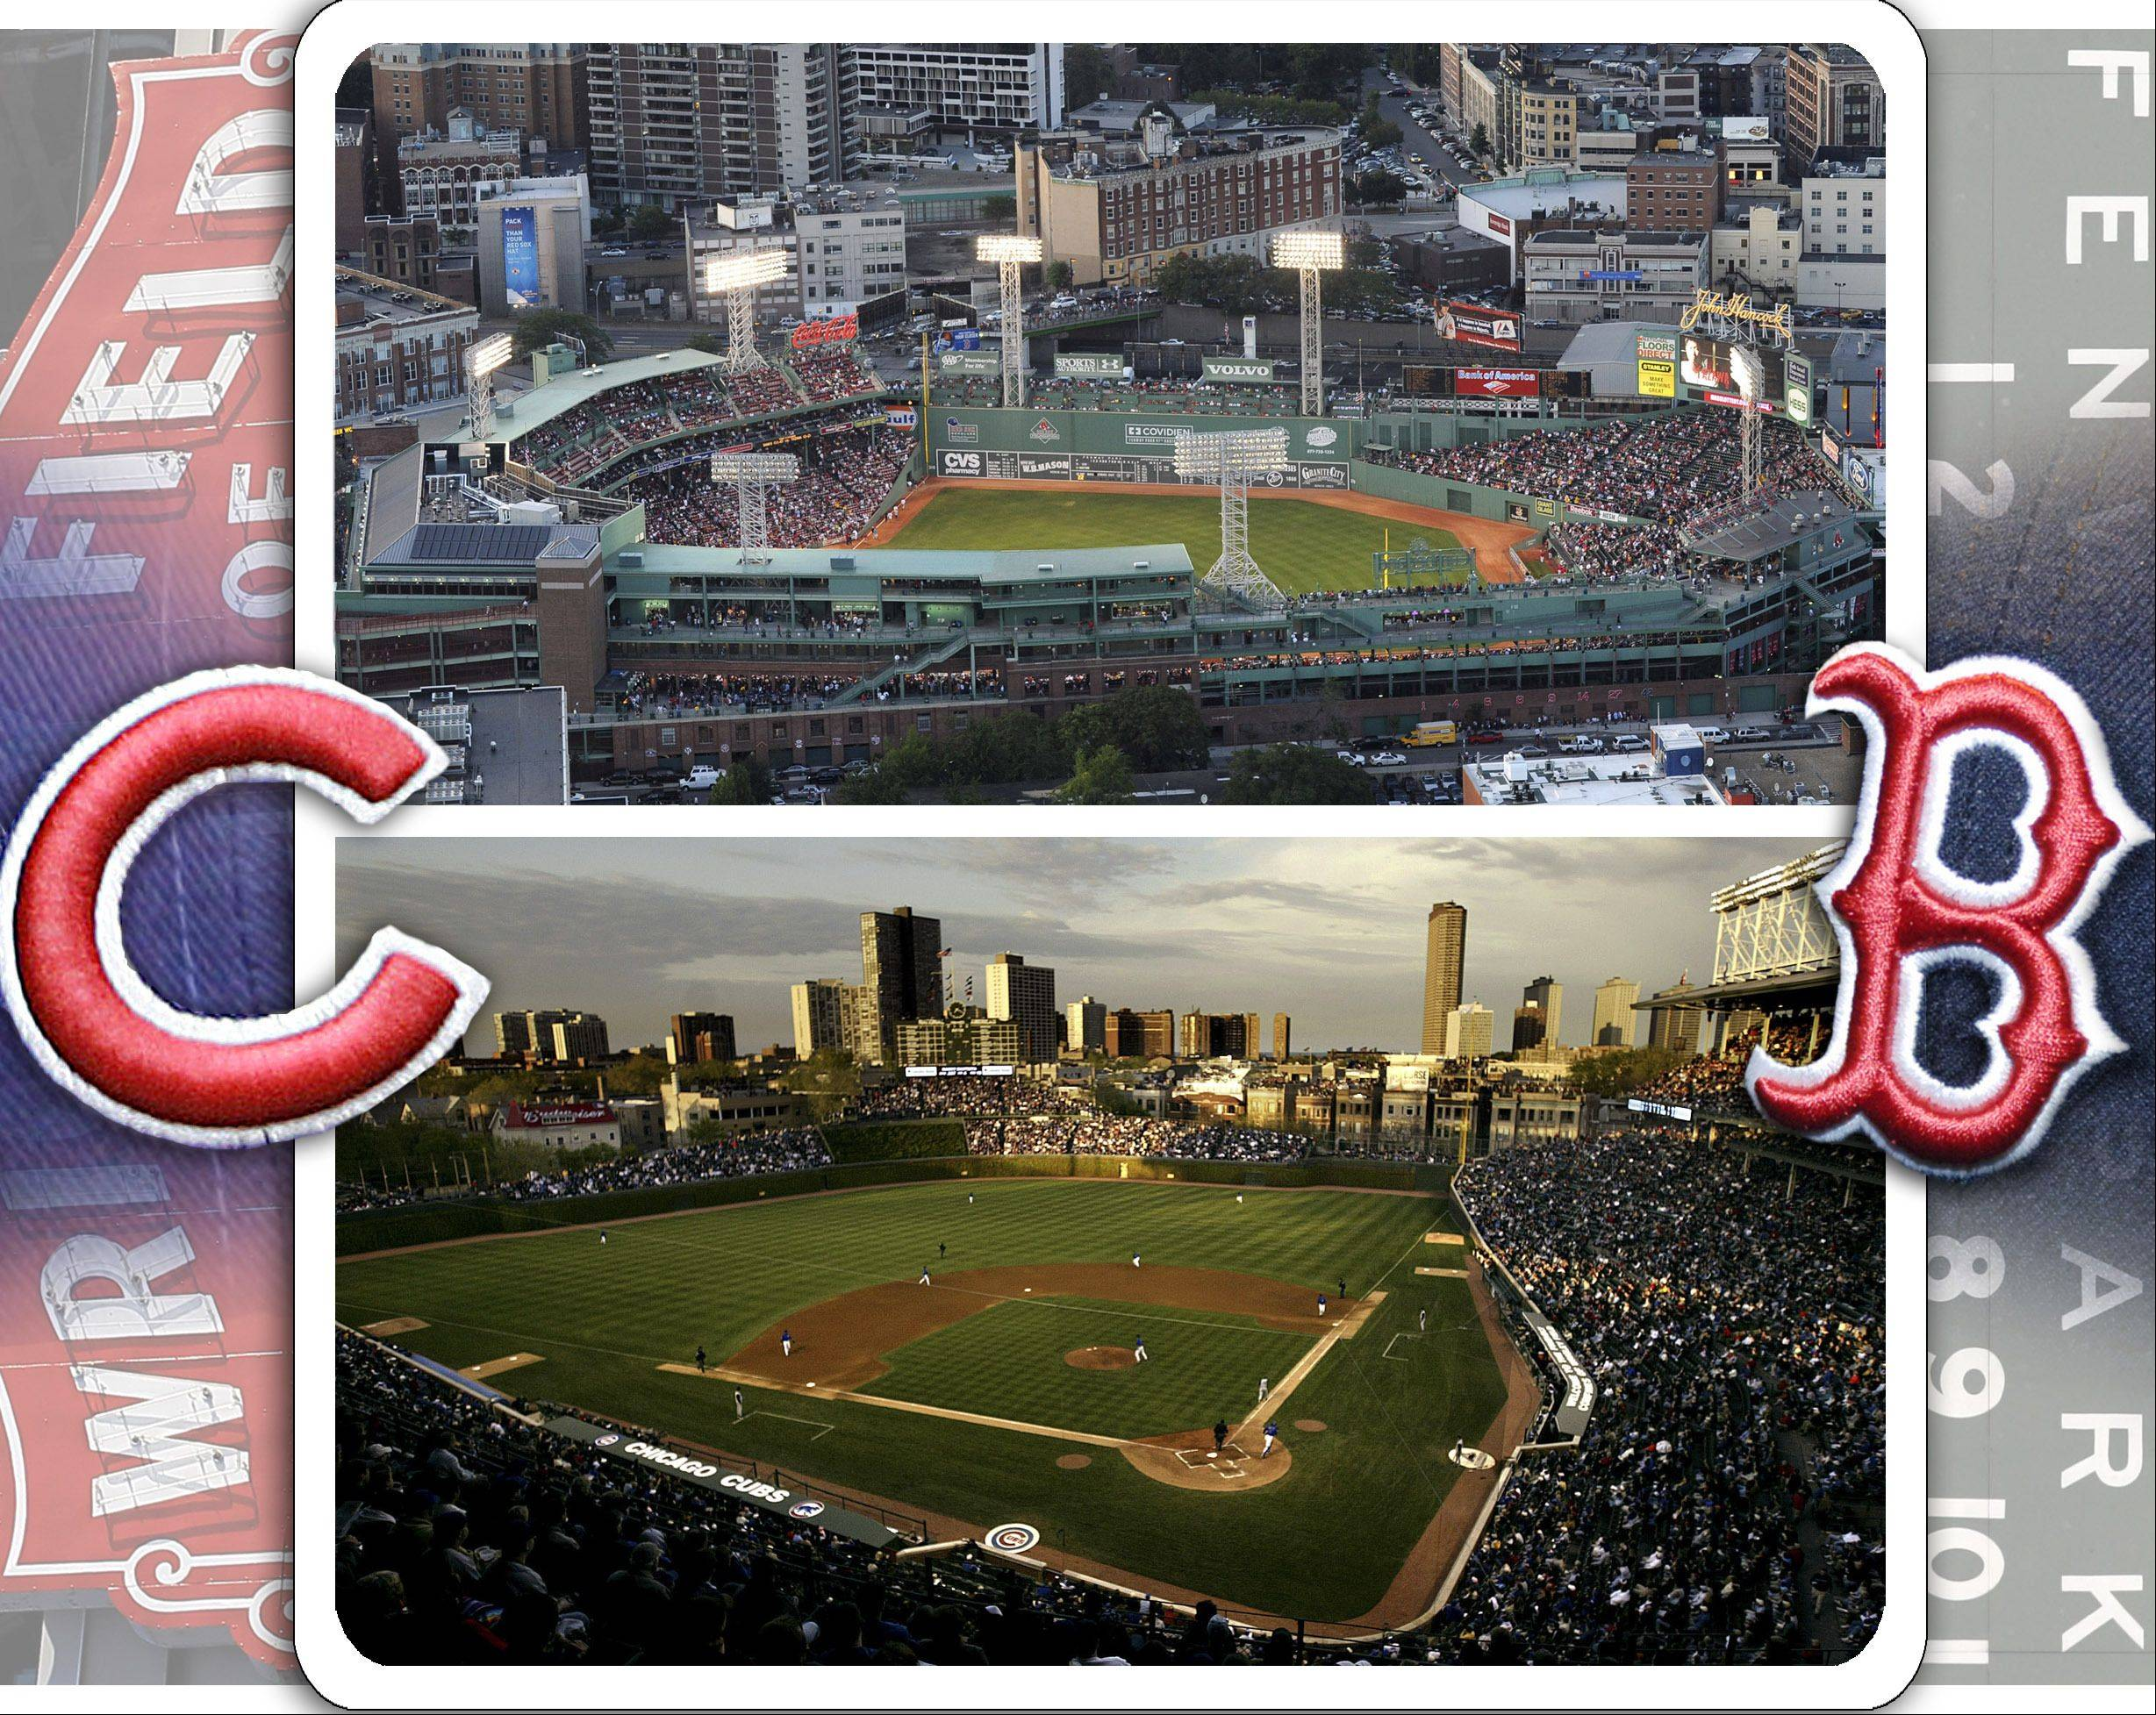 Comparing cathedrals: Fenway vs. Wrigley